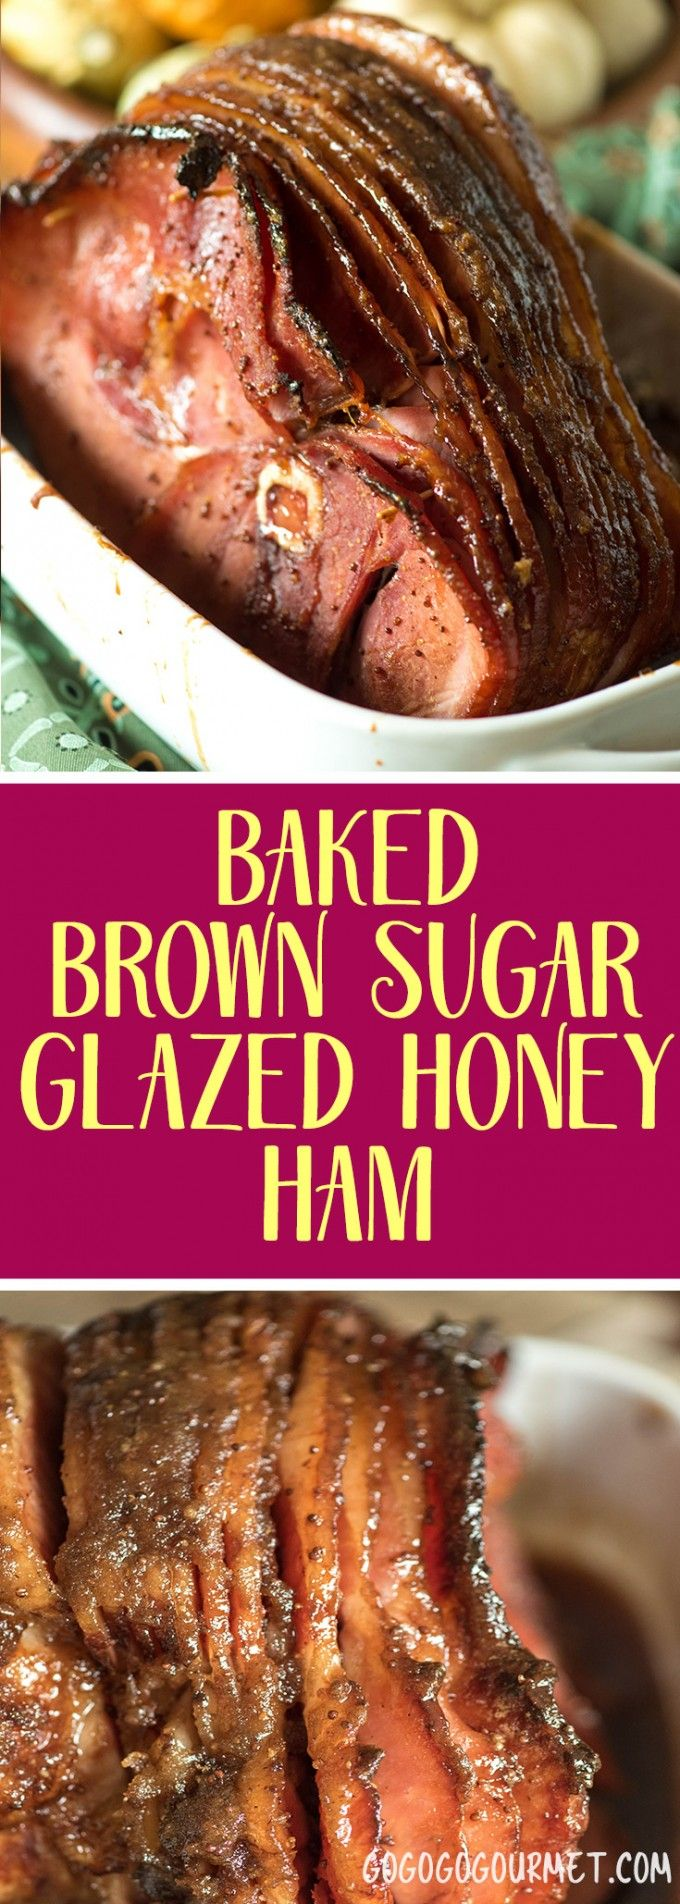 Super simple, yet super delicious, this glaze is the best way to dress up a ham! Brown Sugar Honey Glazed Ham | Go Go Go Gourmet @Go Go Go Gourmet